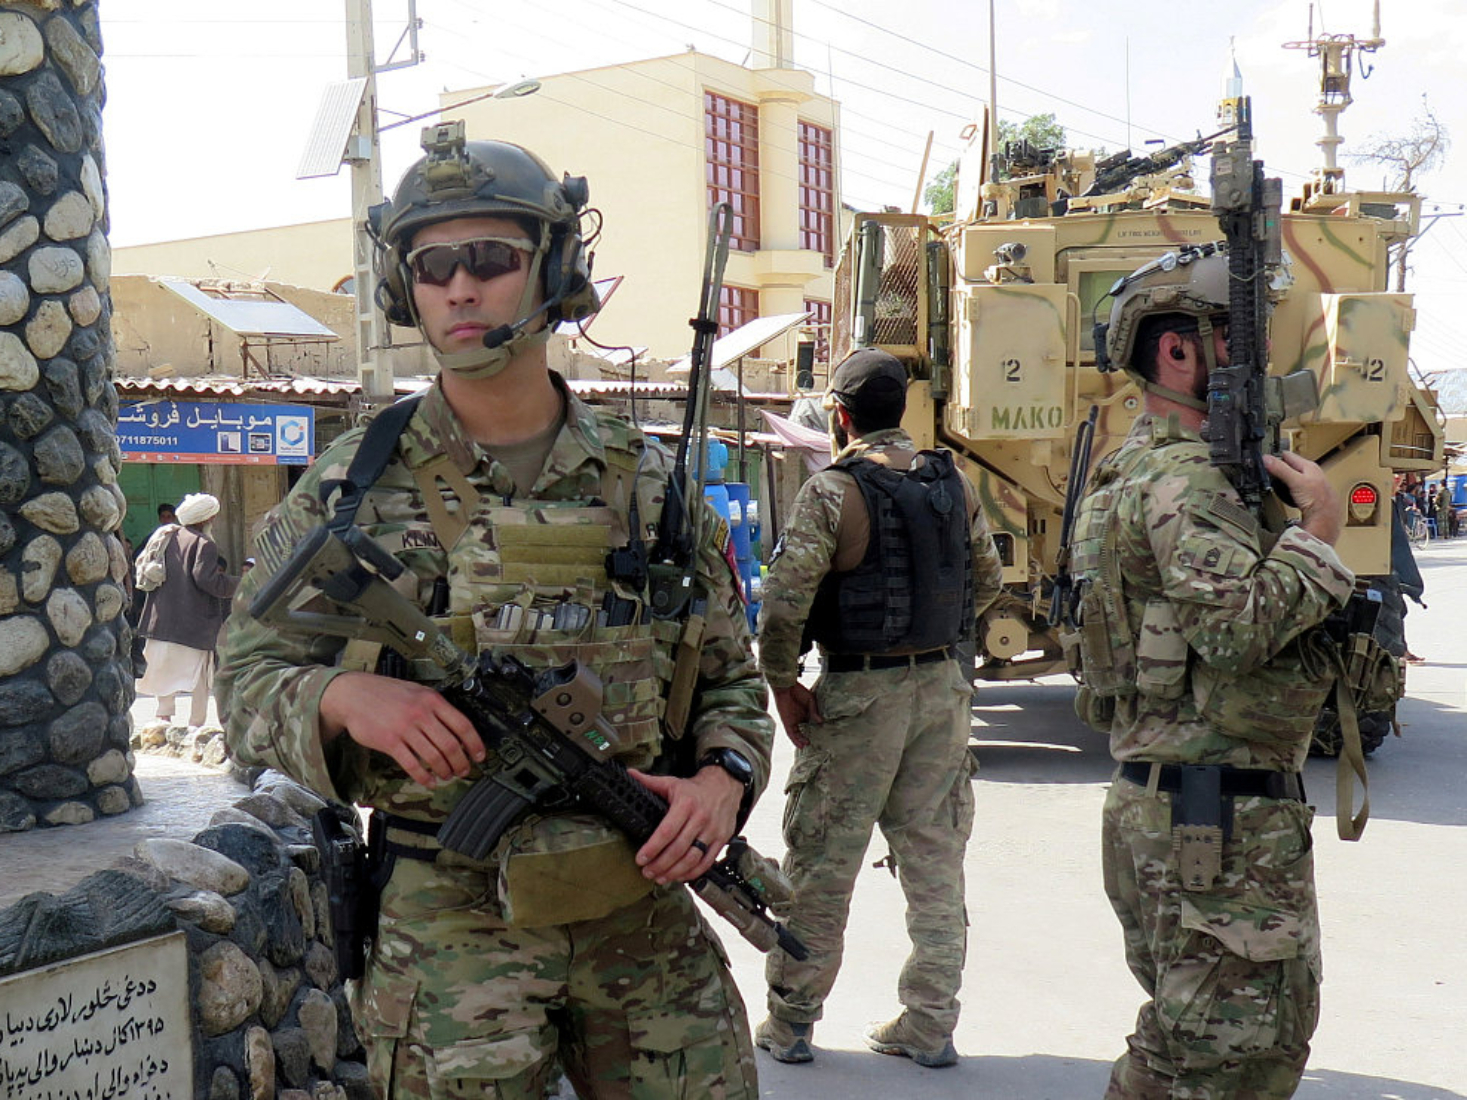 At least 30 civilians died in May US strikes in Afghanistan: UN probe